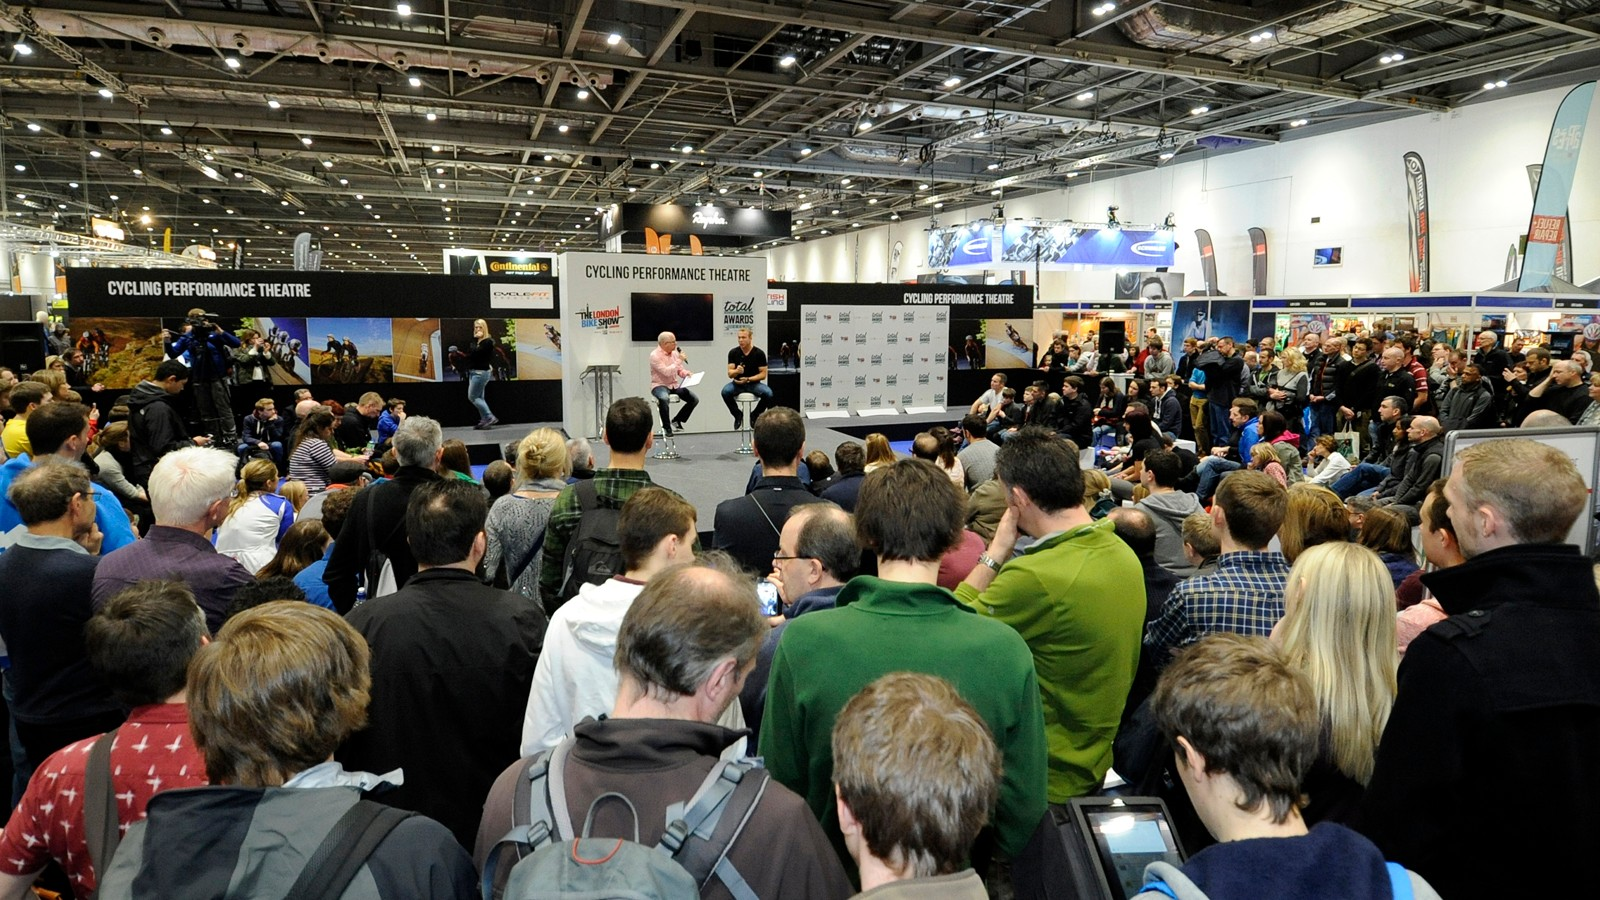 The London Bike Show will be back in February 2015